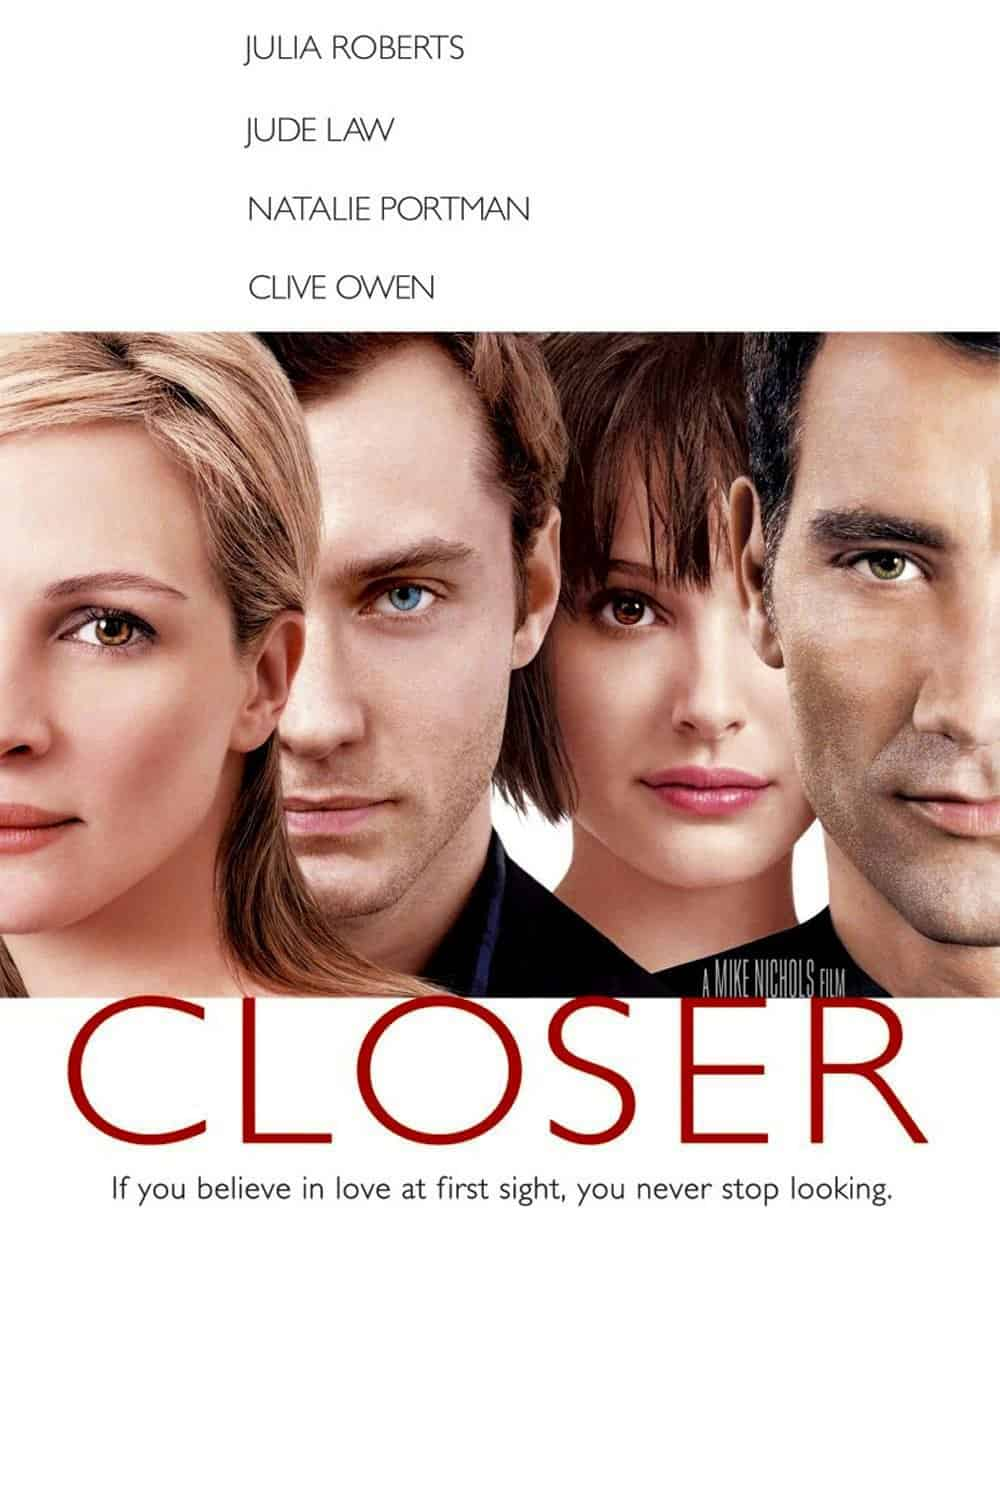 Photo of Closer – Cos'ha di bello la verità? – con Jude Law, Julia Roberts, Clive Owen, Natalie Portman